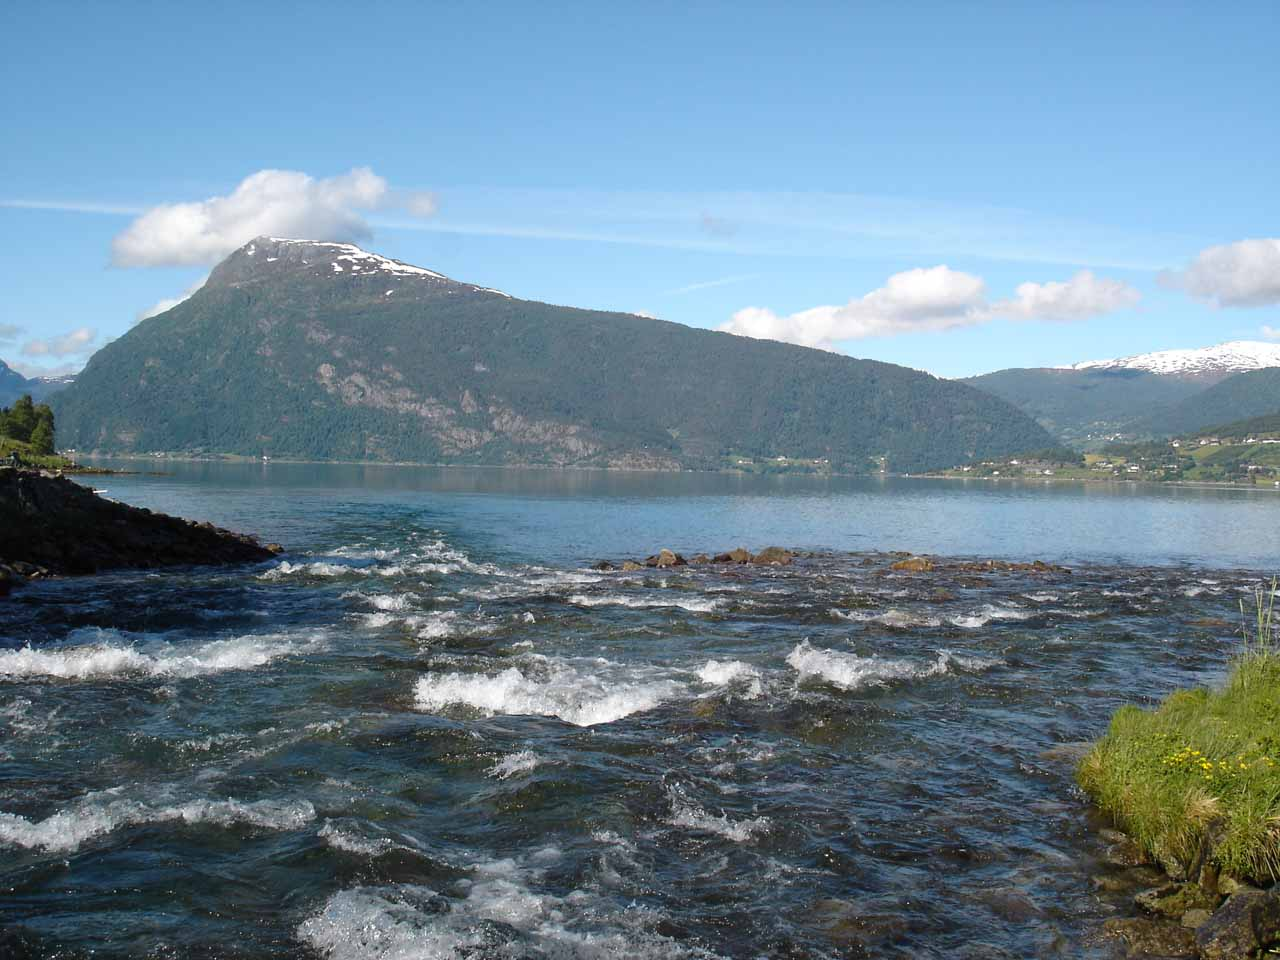 Back at the confluence of where the watercourse of Feigefossen joined Lustrafjorden